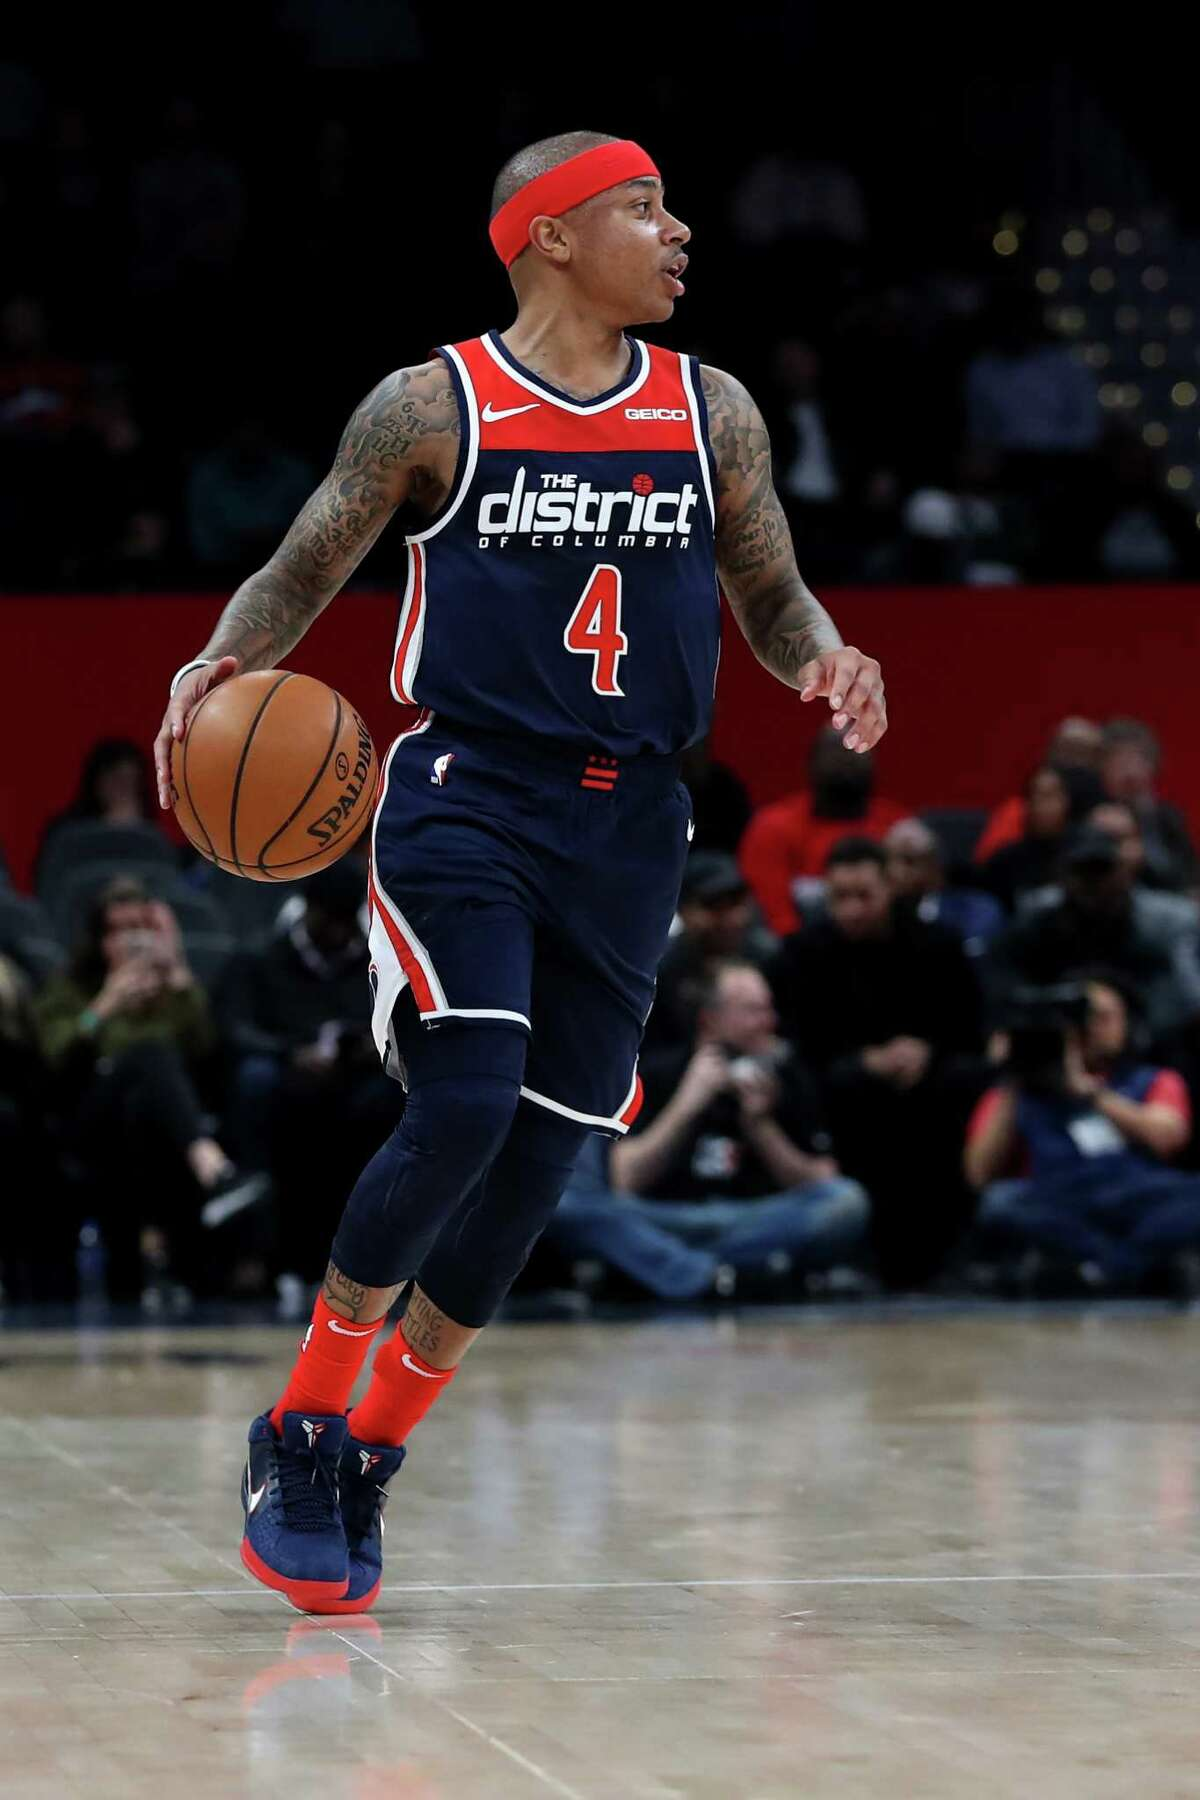 NBA player Isaiah Thomas, a Tacoma native and former Washington Huskies star, is donating more than 1,000 meals to those in the UW Medical Center community impacted by COVID-19.